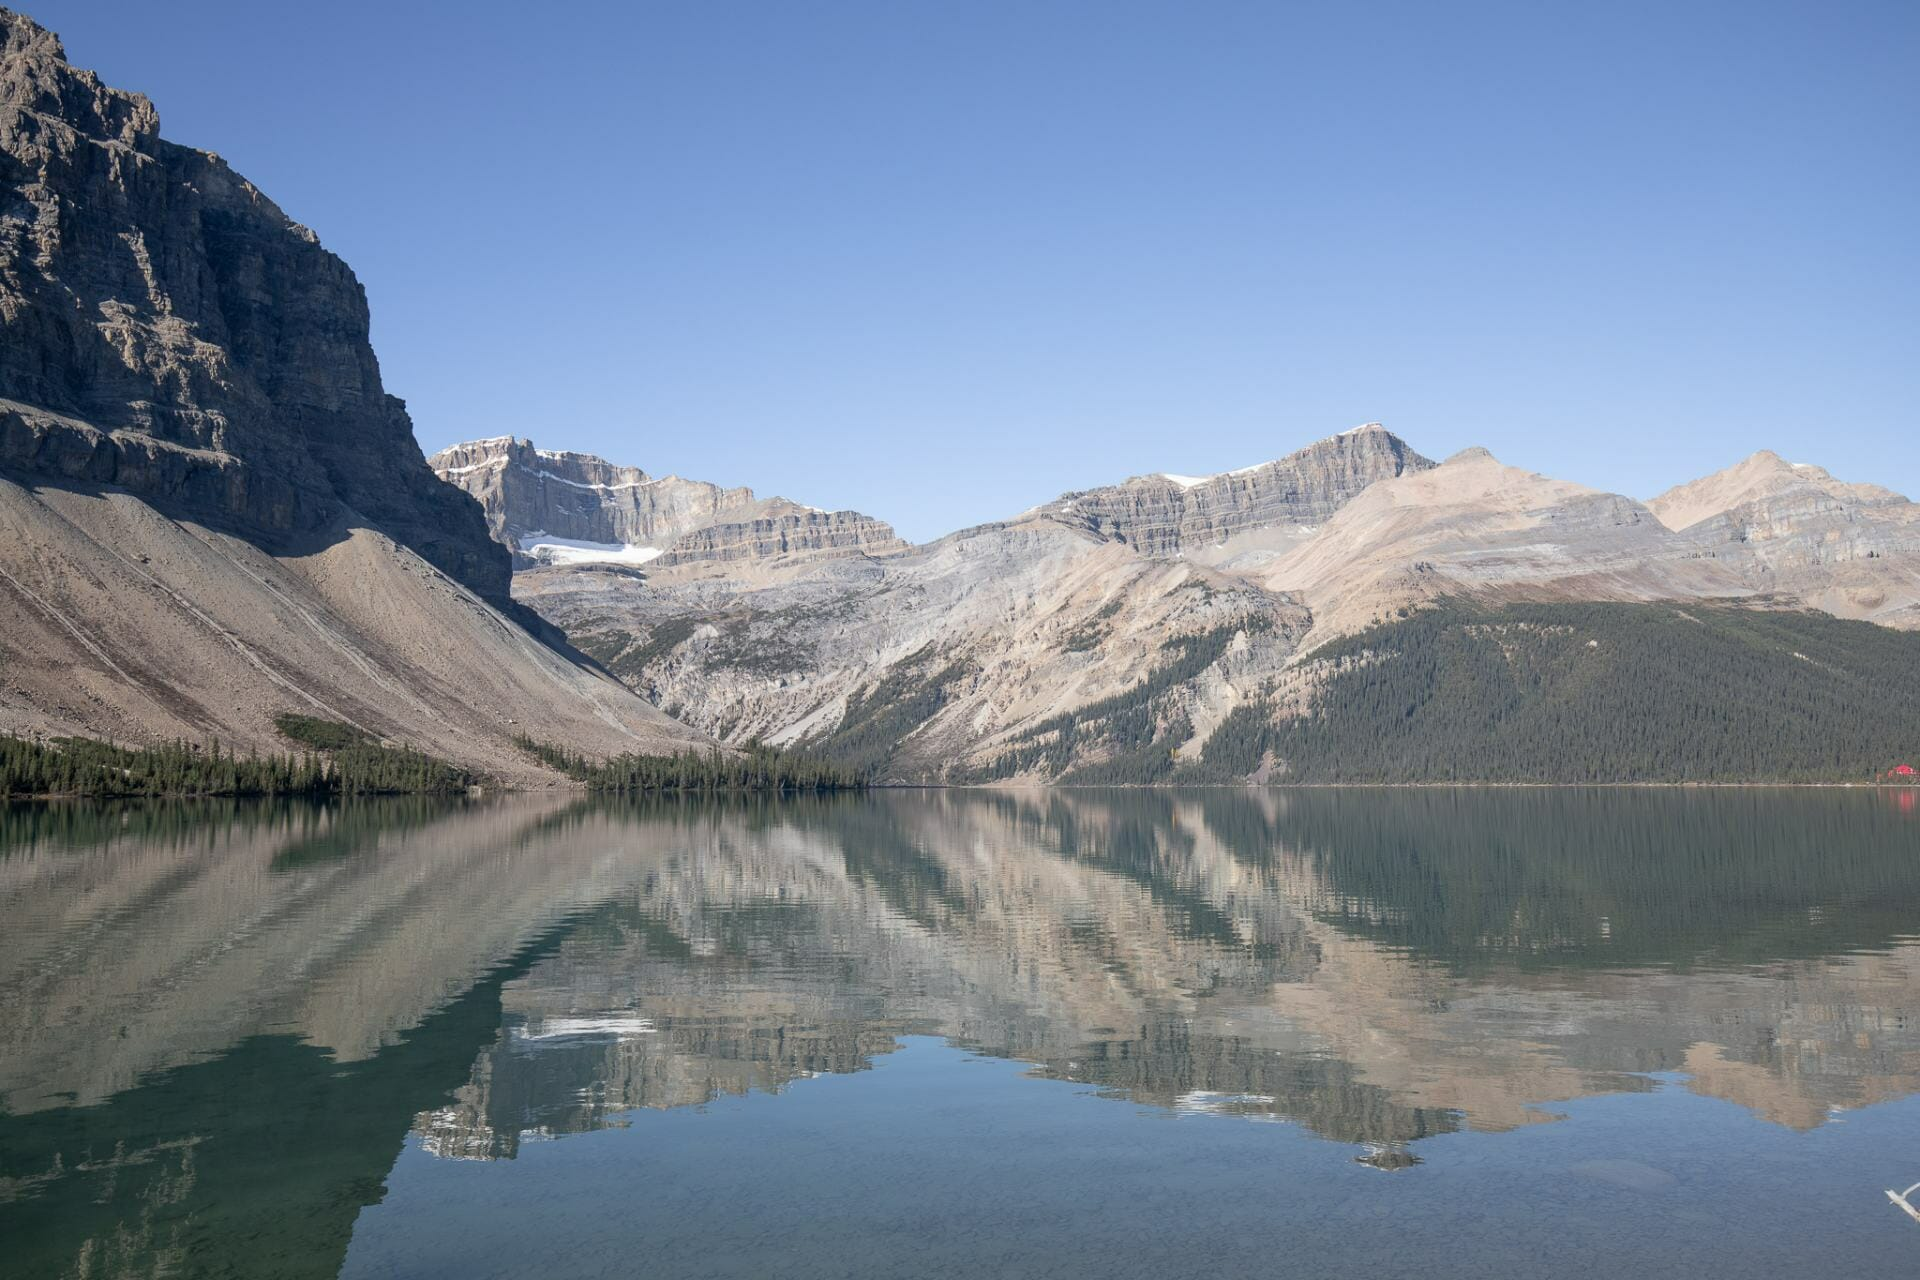 Bow Lake is one of the prettiest and best photo spots in Banff